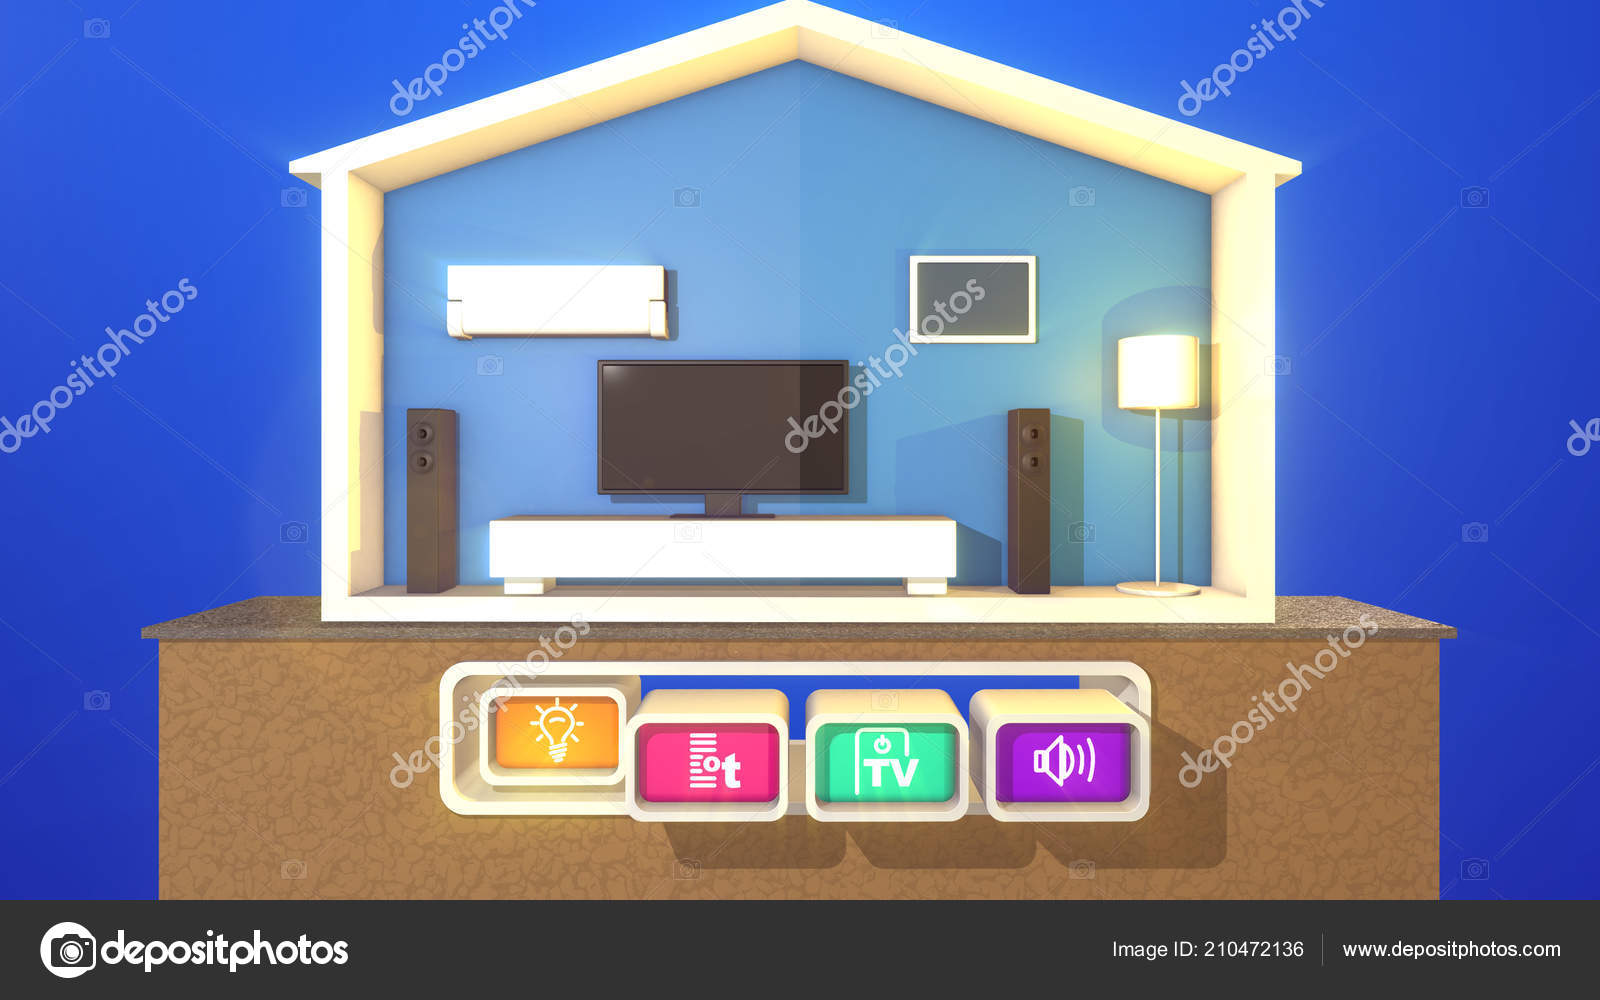 Smart Home One Pressed Button Meaning